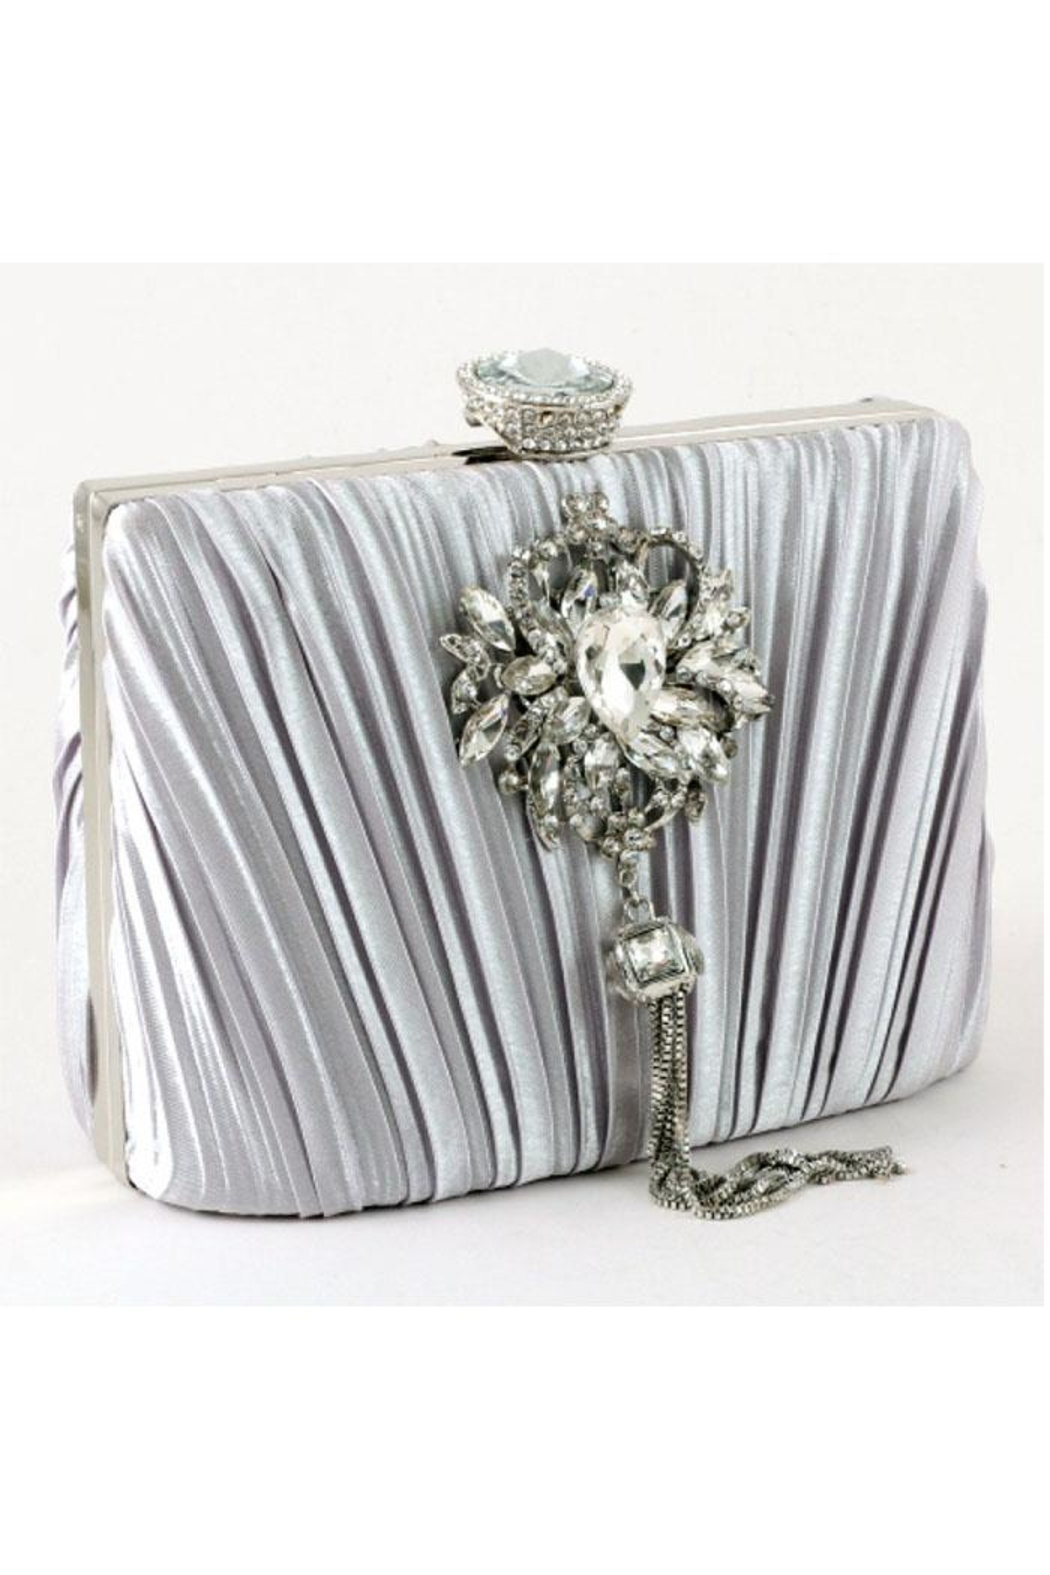 Madison Avenue Accessories Silver Royale Clutch - Main Image